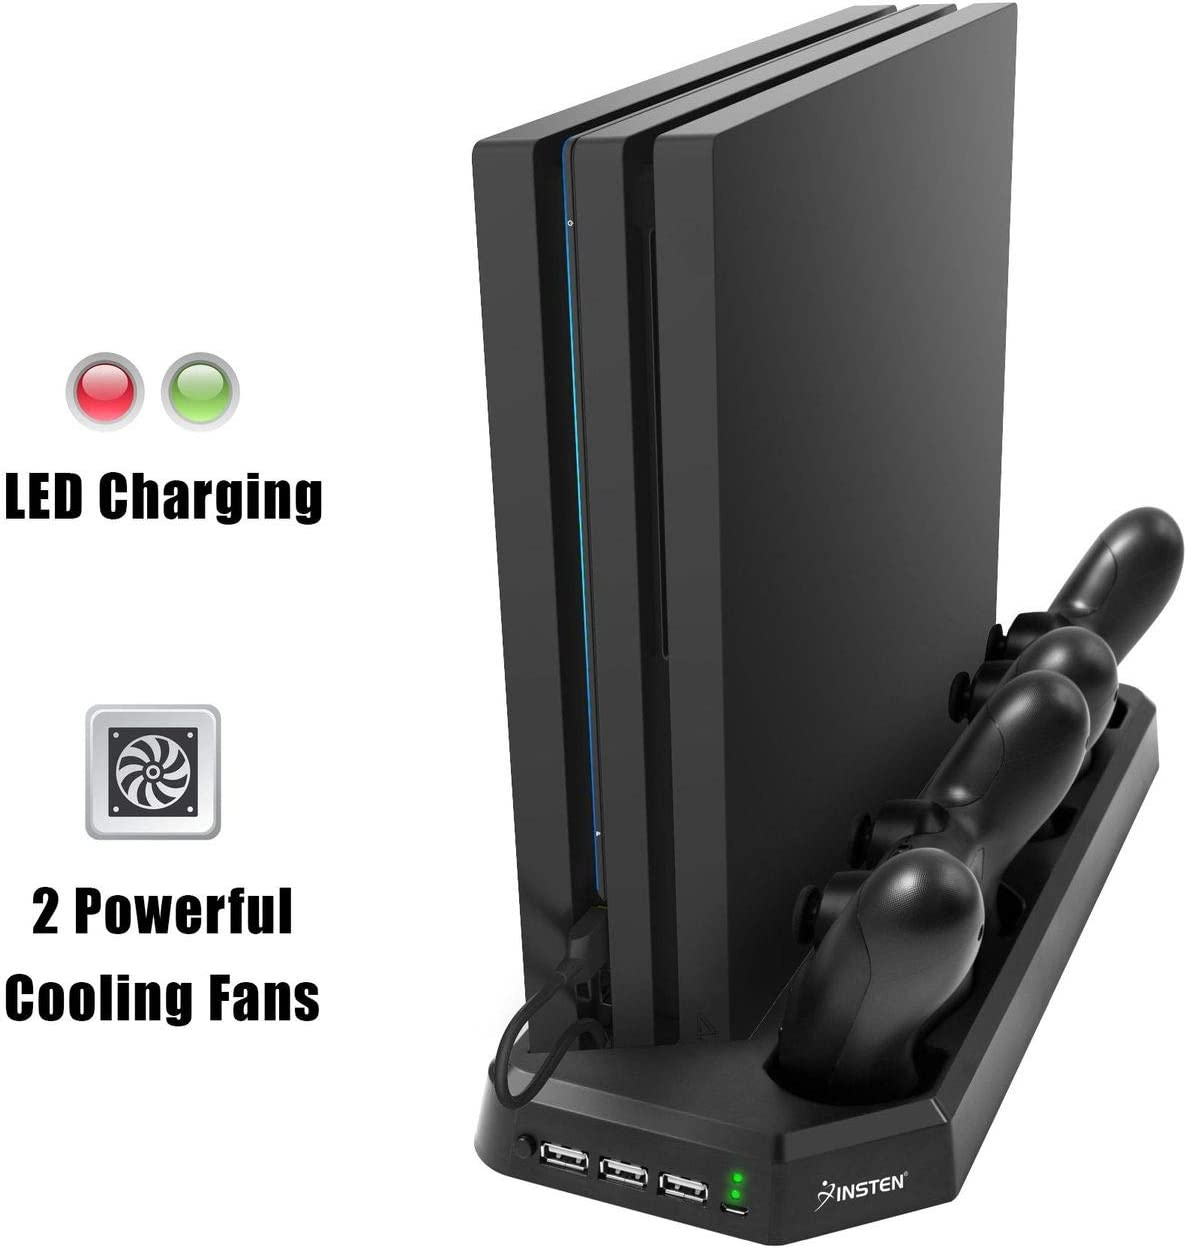 for PS4 Pro Charging Station with Cooling Fan, Insten PS4 Pro Dual Controller Charging Dock in Vertical Stand Design with 3 USB Hub Charging Ports, Bulit-in Cooling Fan and Charging LED Indicator